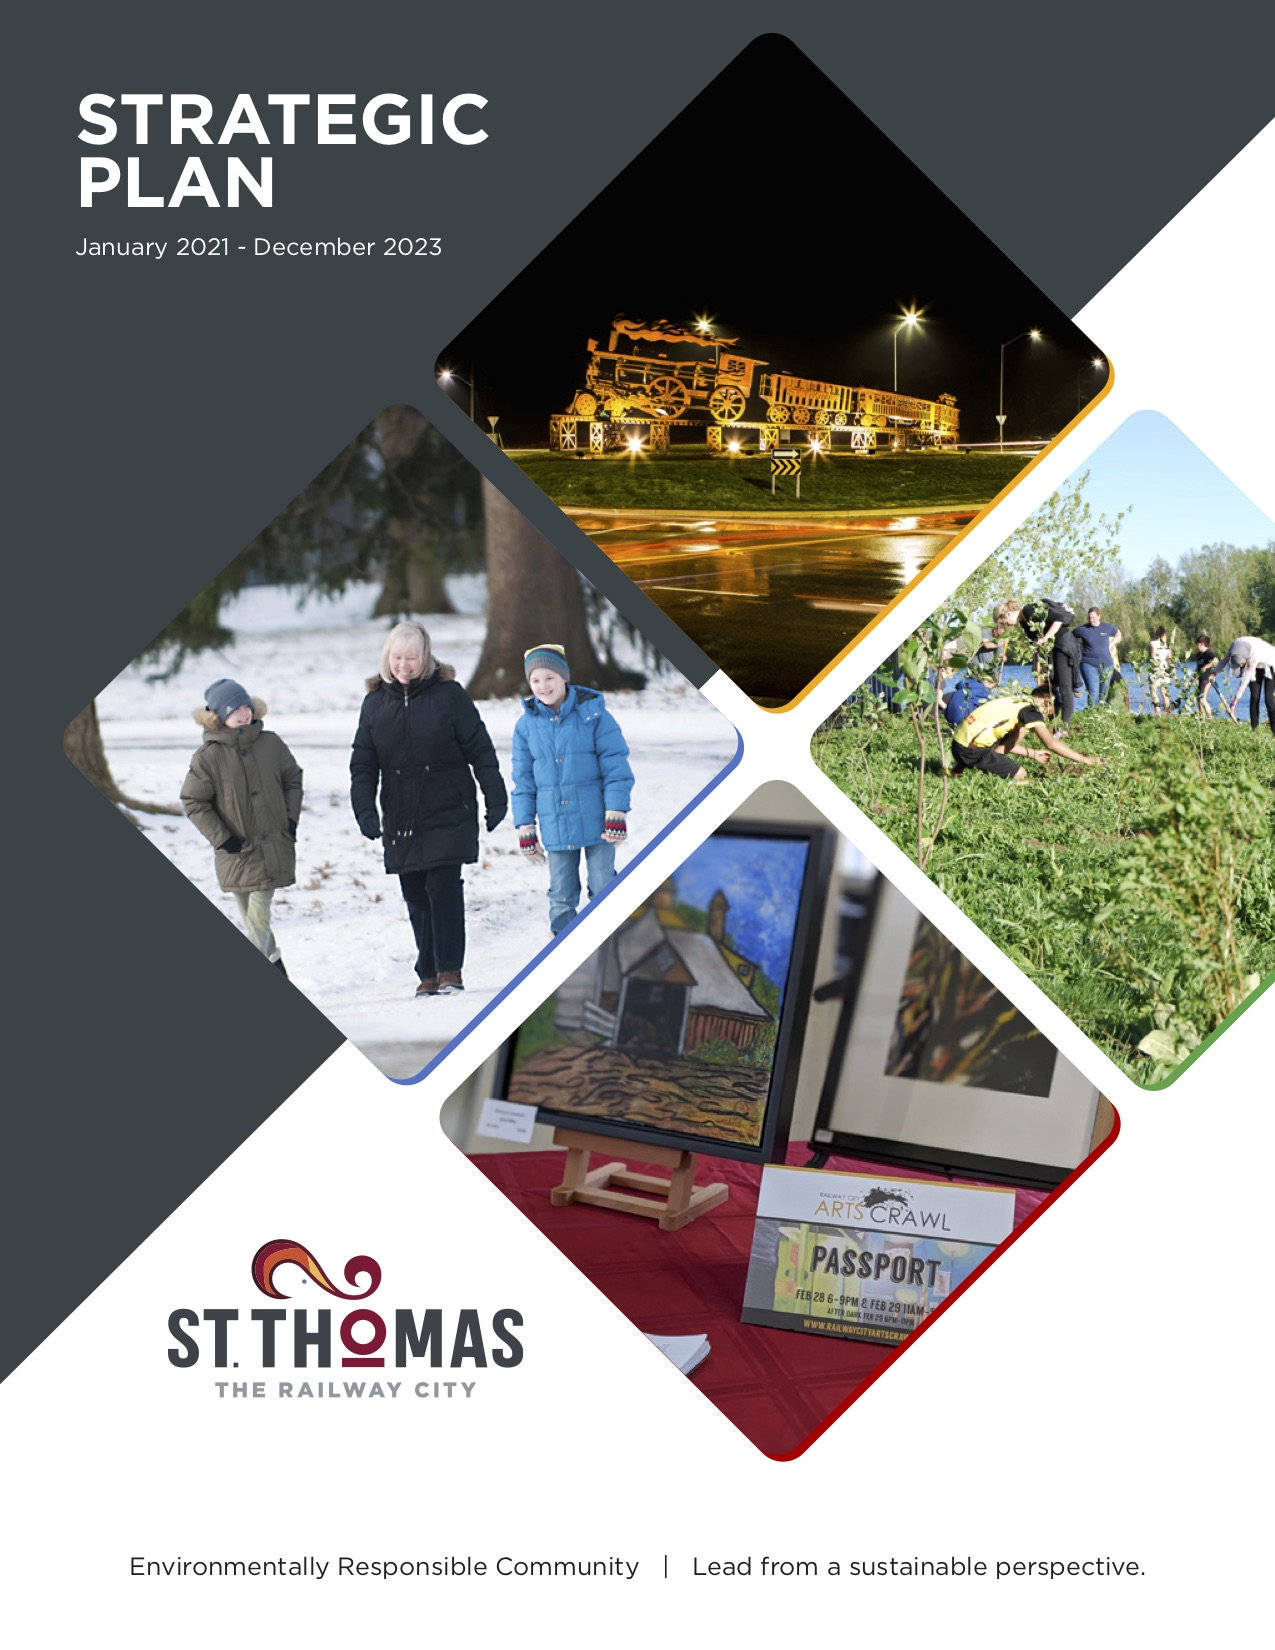 St Thomas Strategic Plan 2021 2023 01